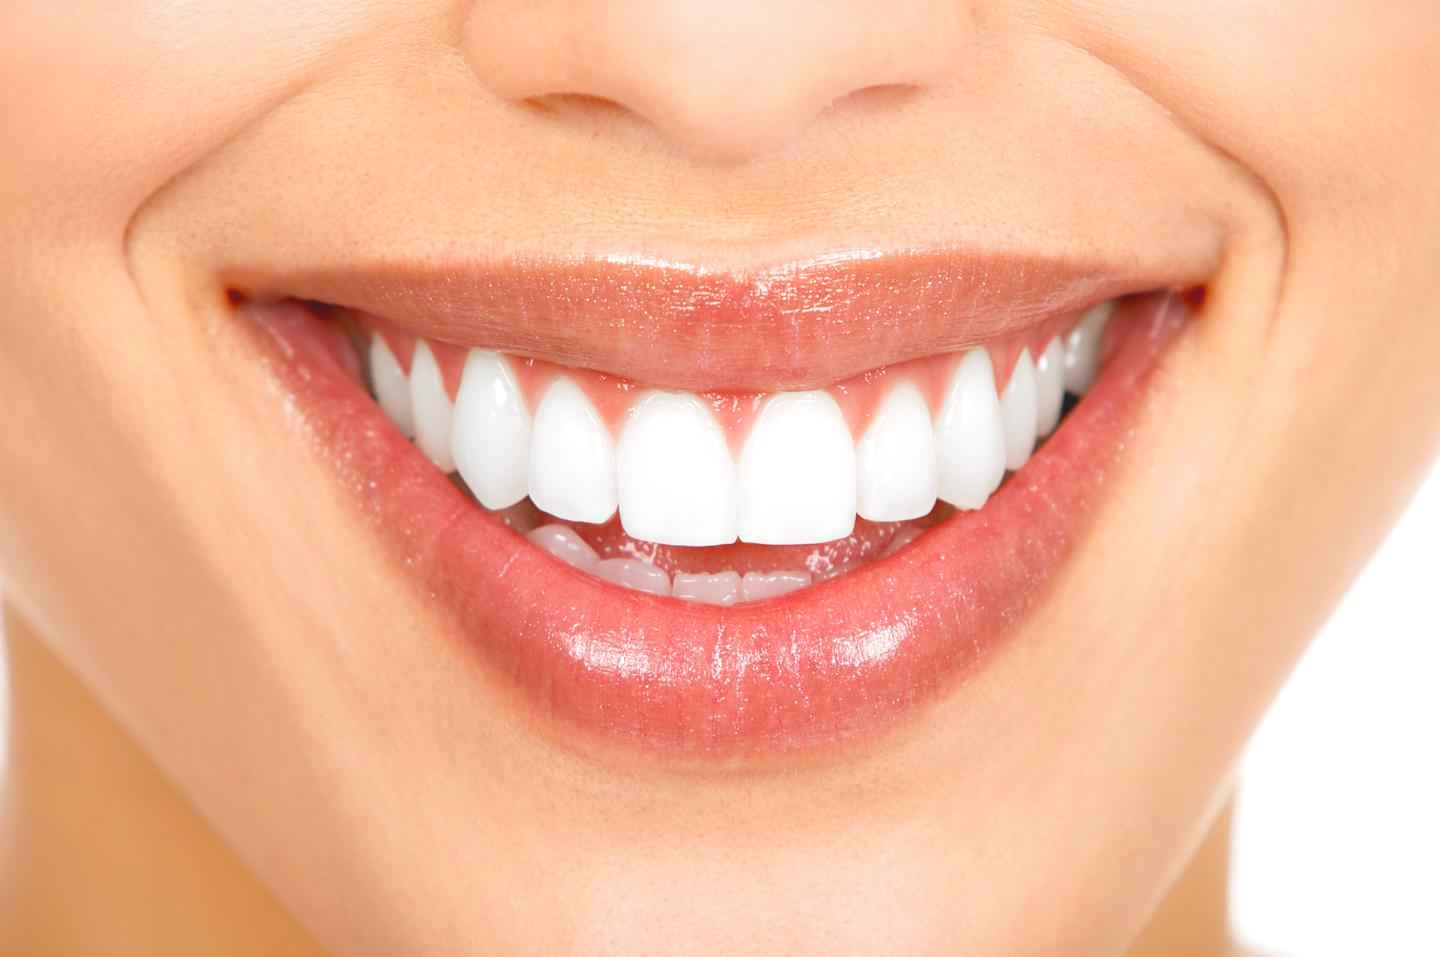 New research may result in bio-engineered replacement teeth which are generated from a person's own gum cells (Photo: Shutterstock)